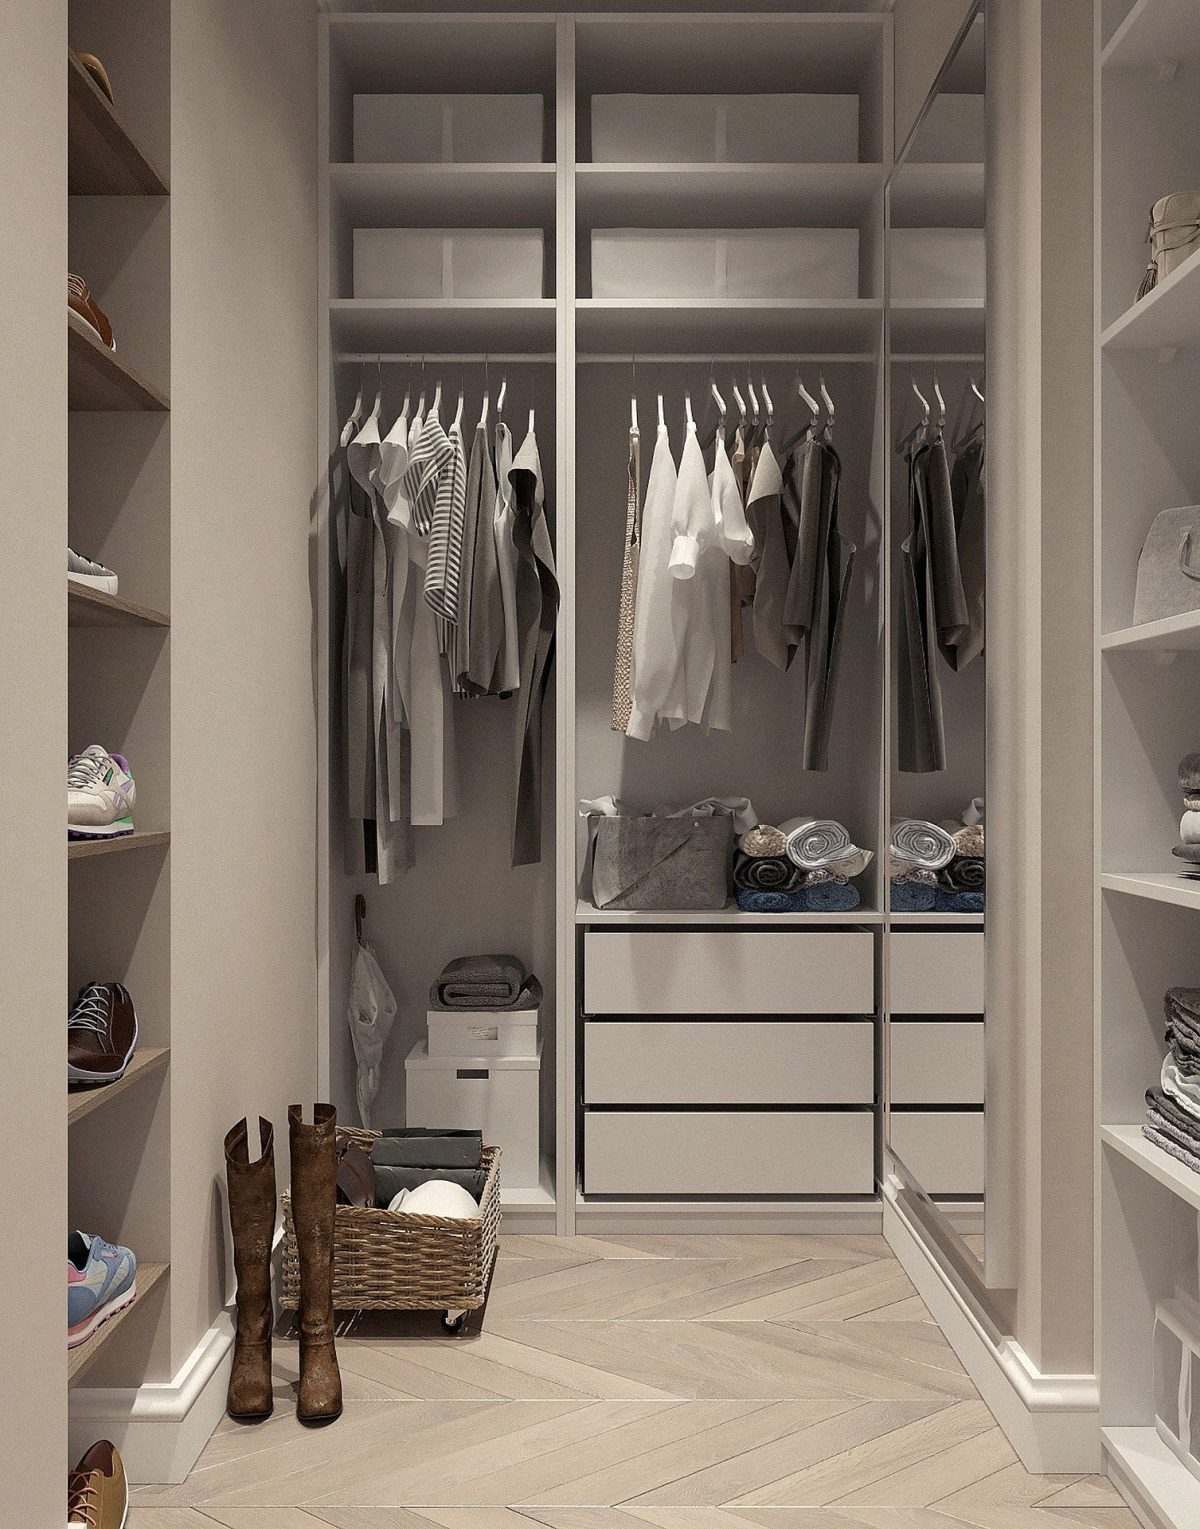 Organizers Can Be An Effective Clothes Storage Solution